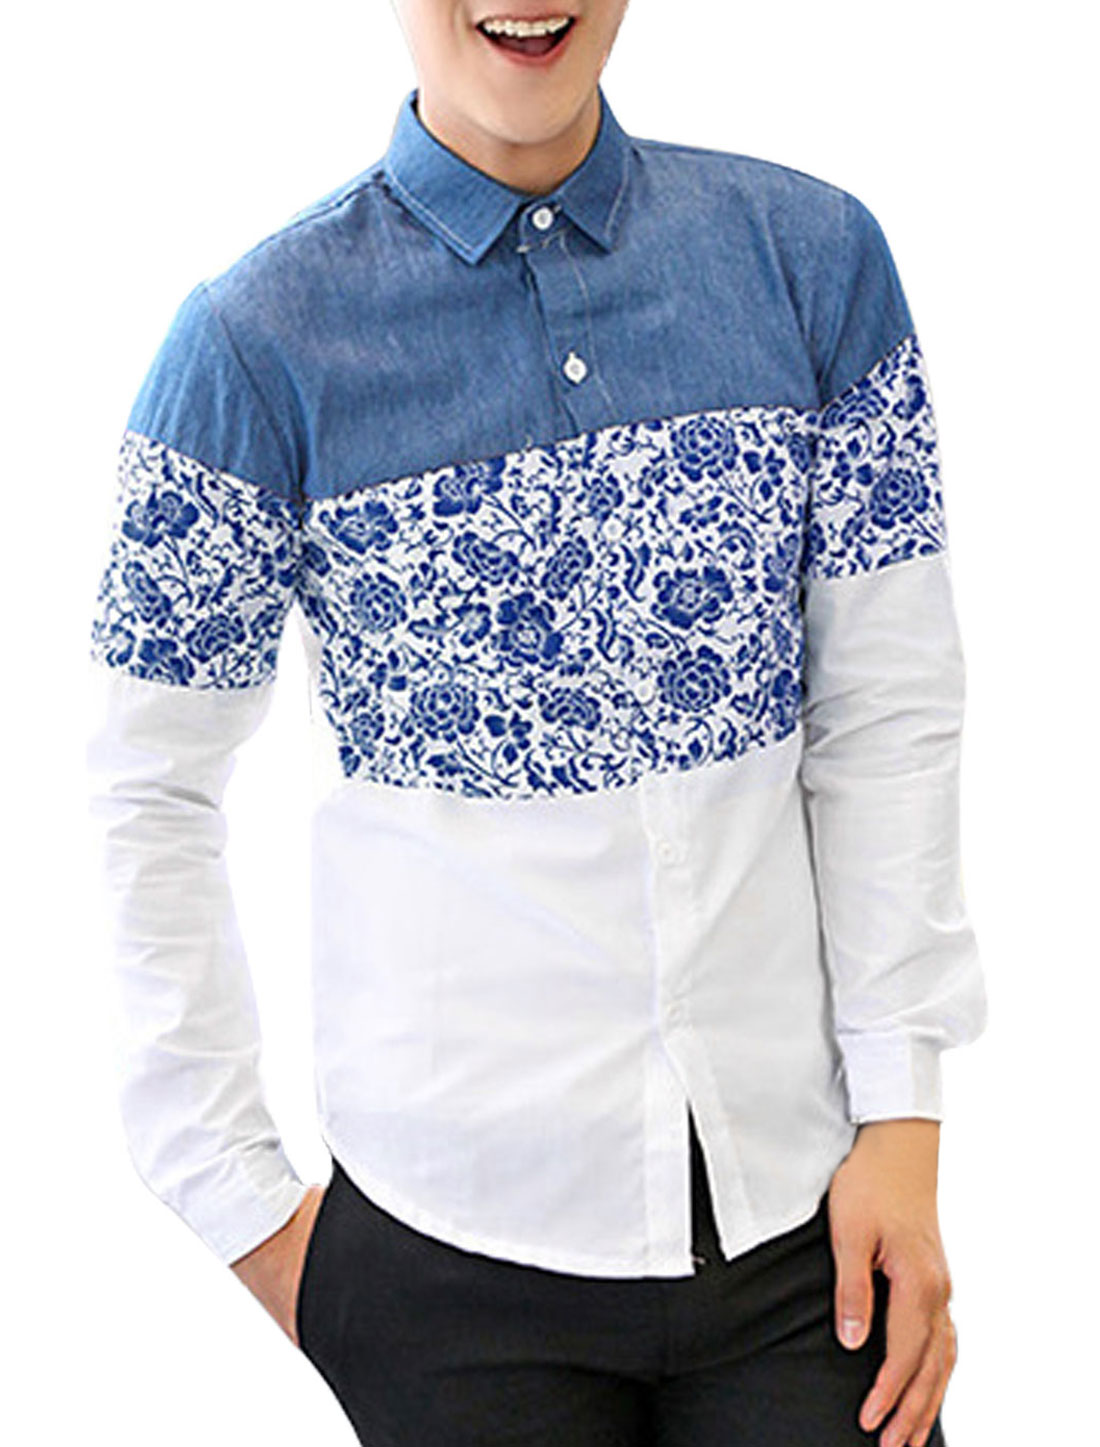 Men Point Collar Floral Pattern Single Breasted Shirt Navy Blue White M